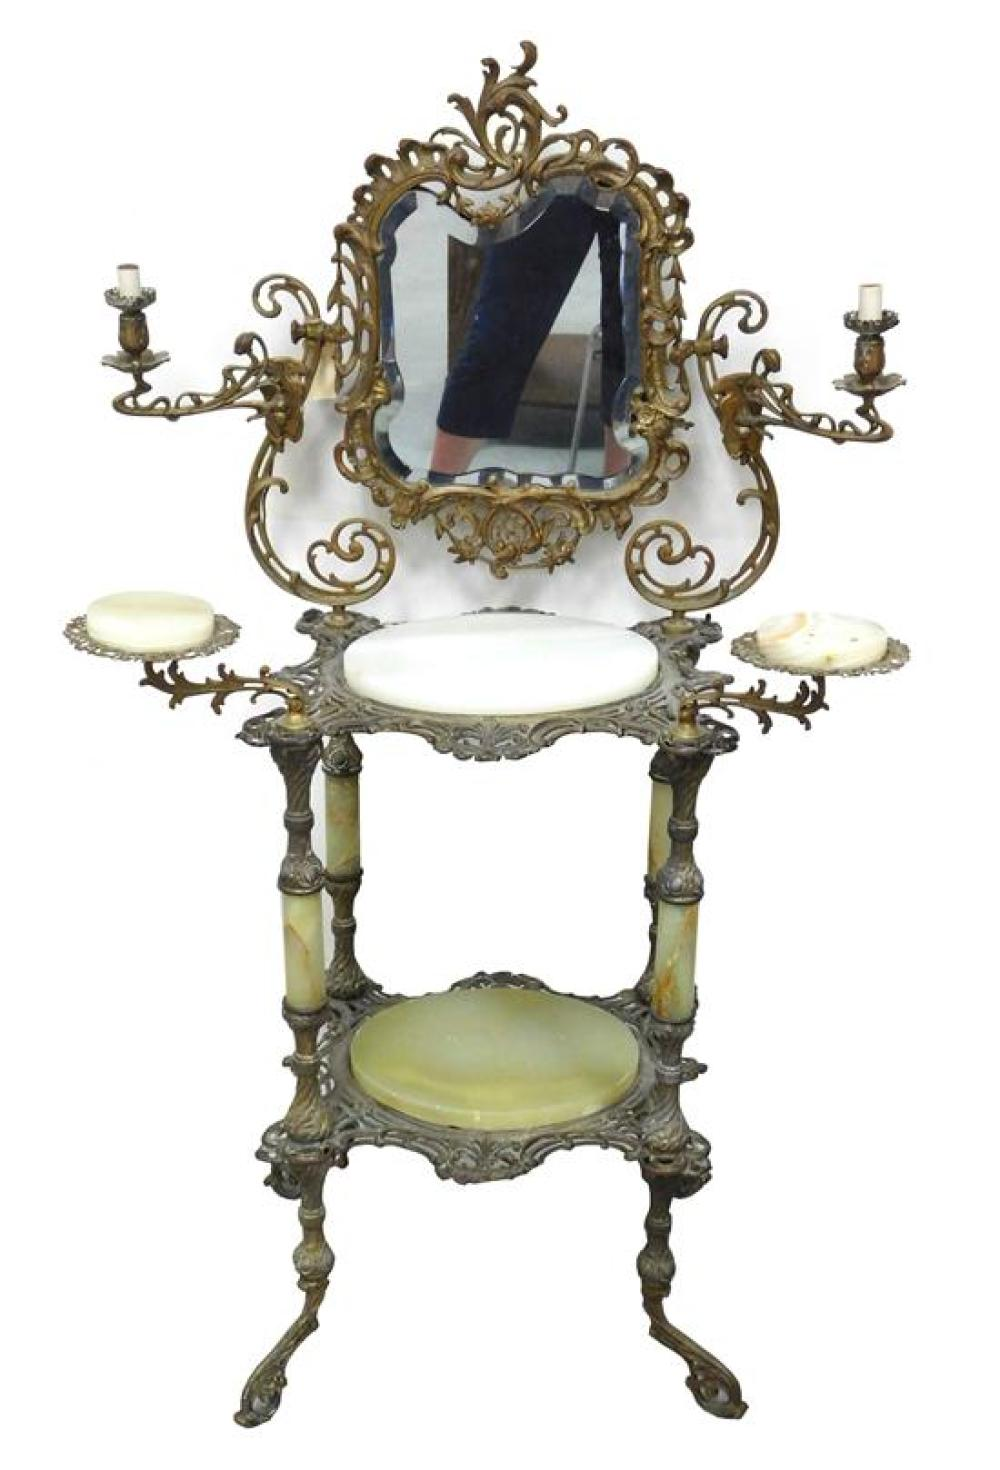 Brass and onyx vanity/ shaving stand with beveled mirror, two candle arms, green oval inset stone with veining, wear consistent with...